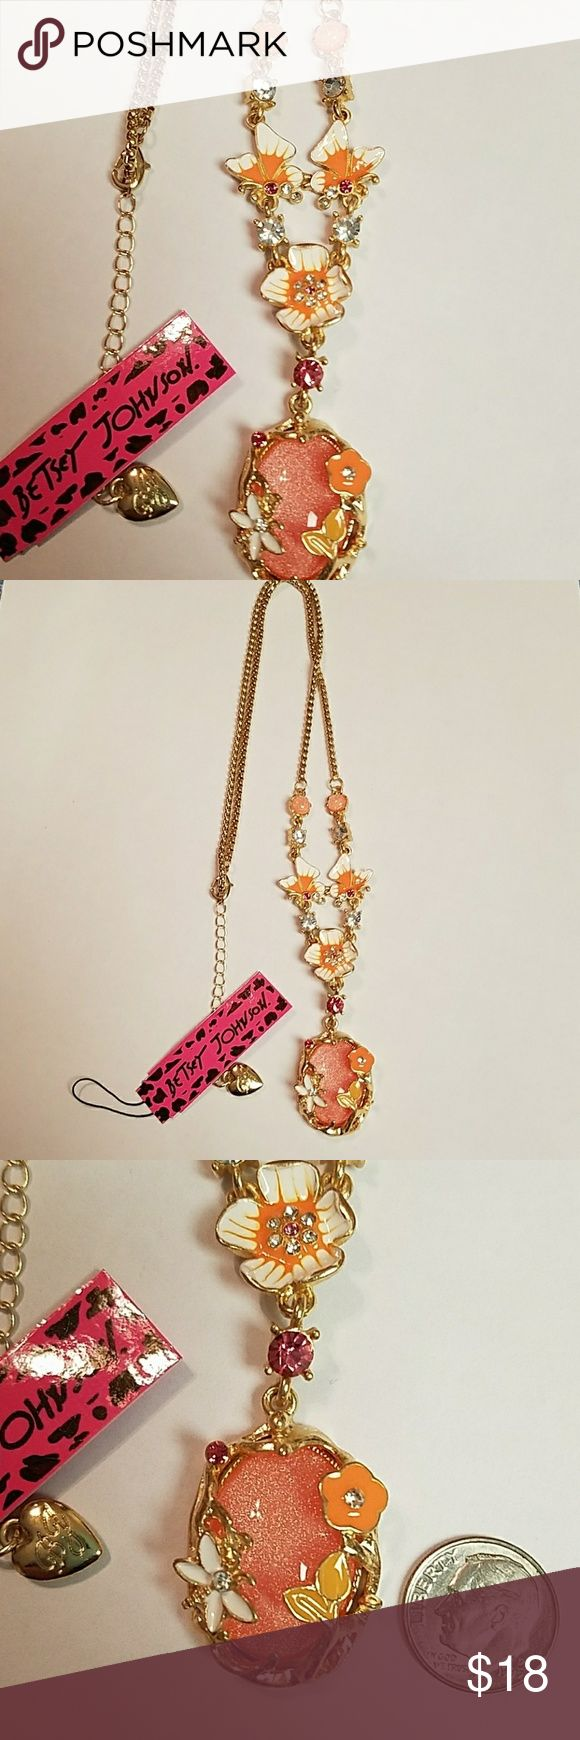 Gorgeous orange and white statement necklace This necklace is absolutely gorgeous with a pearlized orange tone with white and cream clear crystals butterflies flowers absolutely gorgeous wonderful for fall season 22 in Long Betsey Johnson Jewelry Necklaces